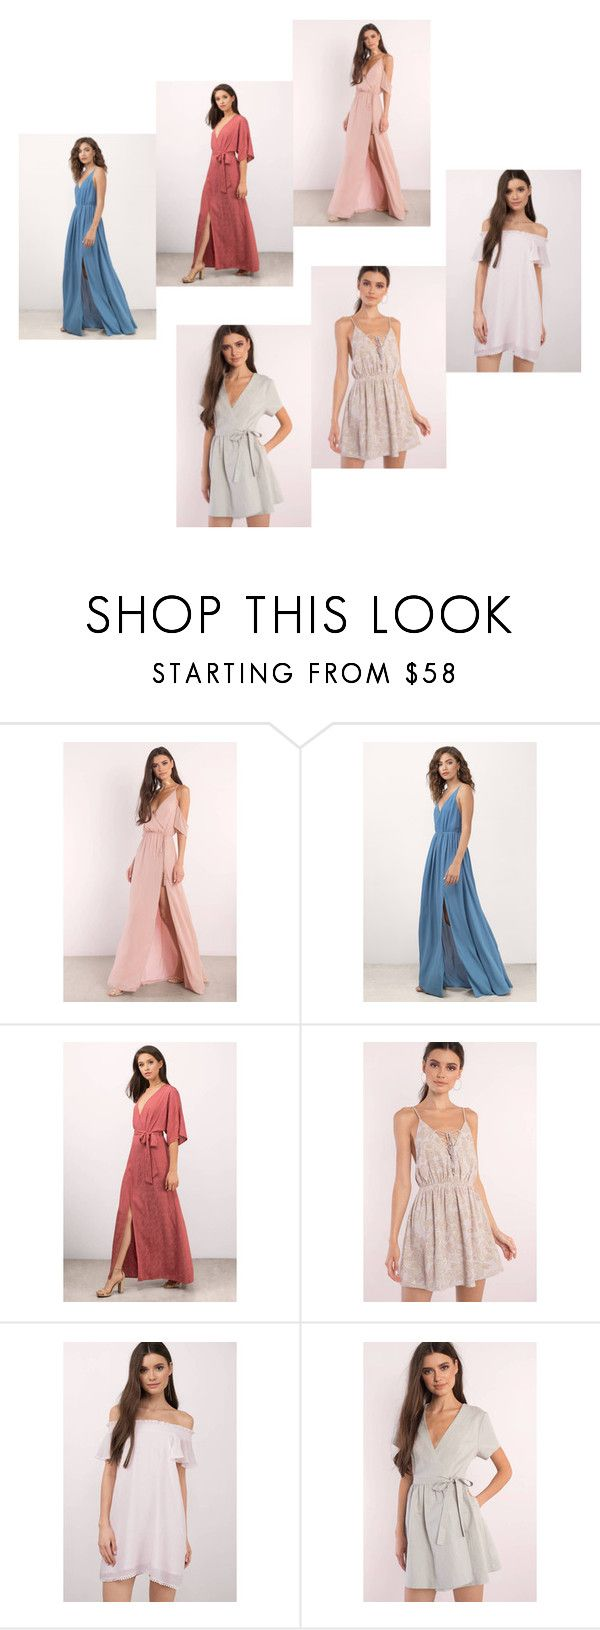 6 Summer Dresses For any Occassion | Maxi dresses for summer | How to Style Maxi dresses | Shift dresses for summer | Affordable Shift and maxi dresses | The Flexman Flat